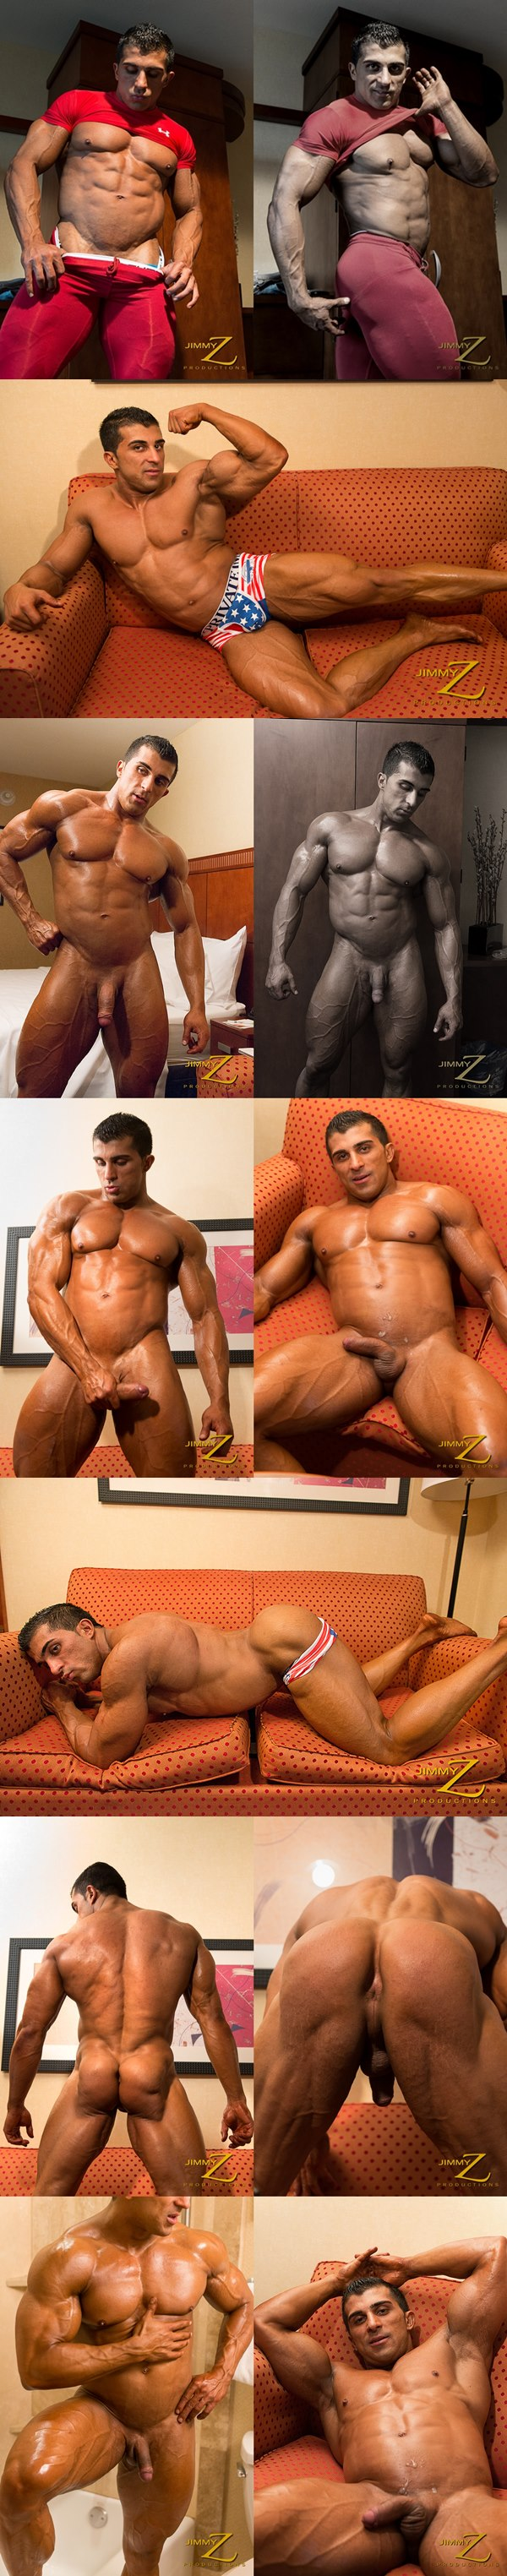 Handsome Karl Kasper shoots his hot load in Muscles for My Client Part 2 at Jimmyzproductions 01